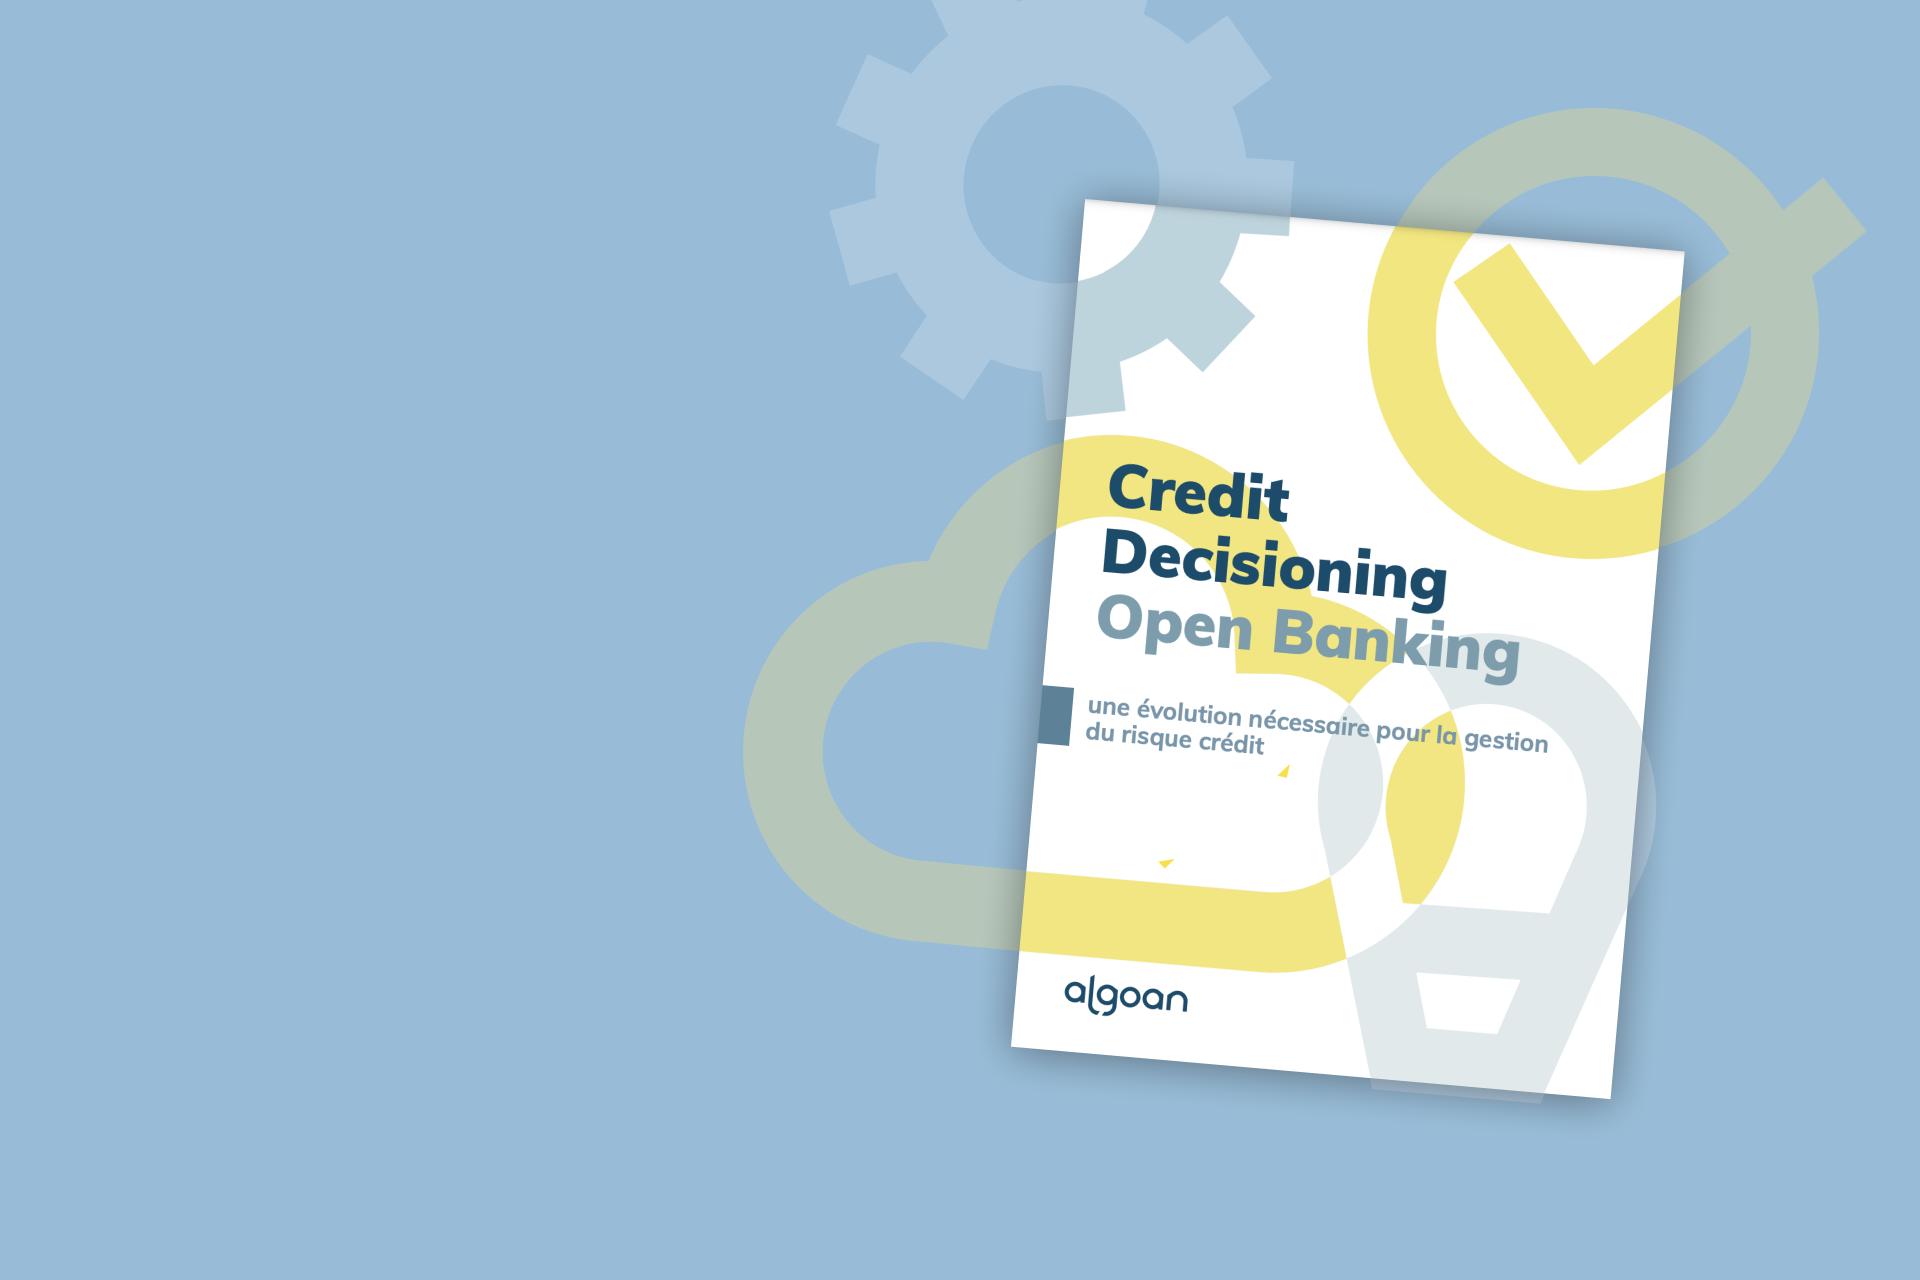 Credit decisioning open banking